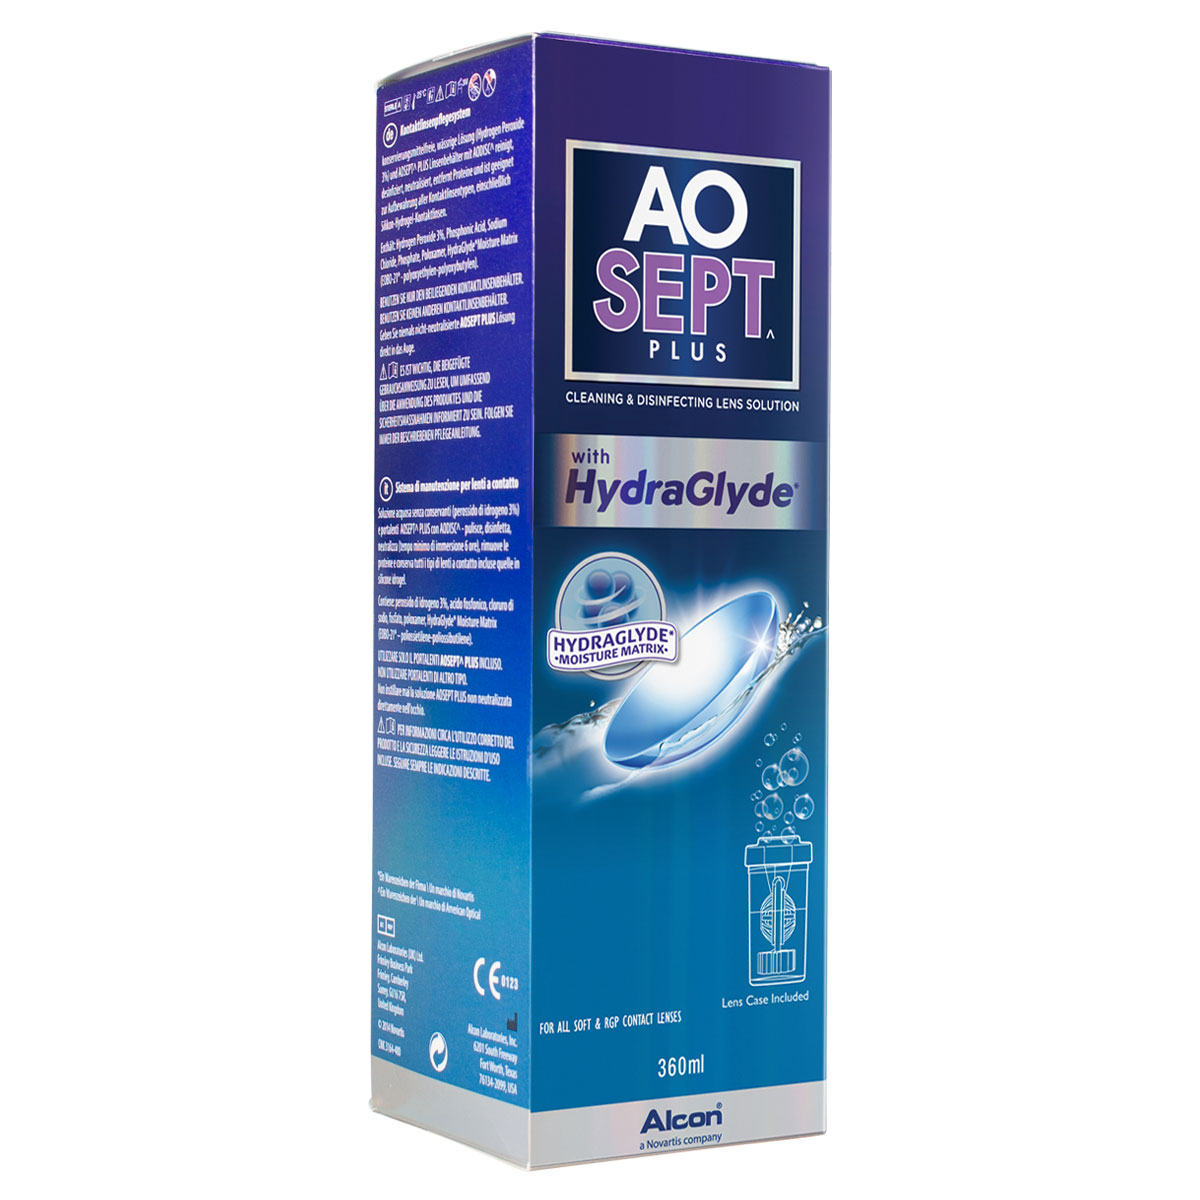 AOSept Plus with HydraGlyde (360ml)